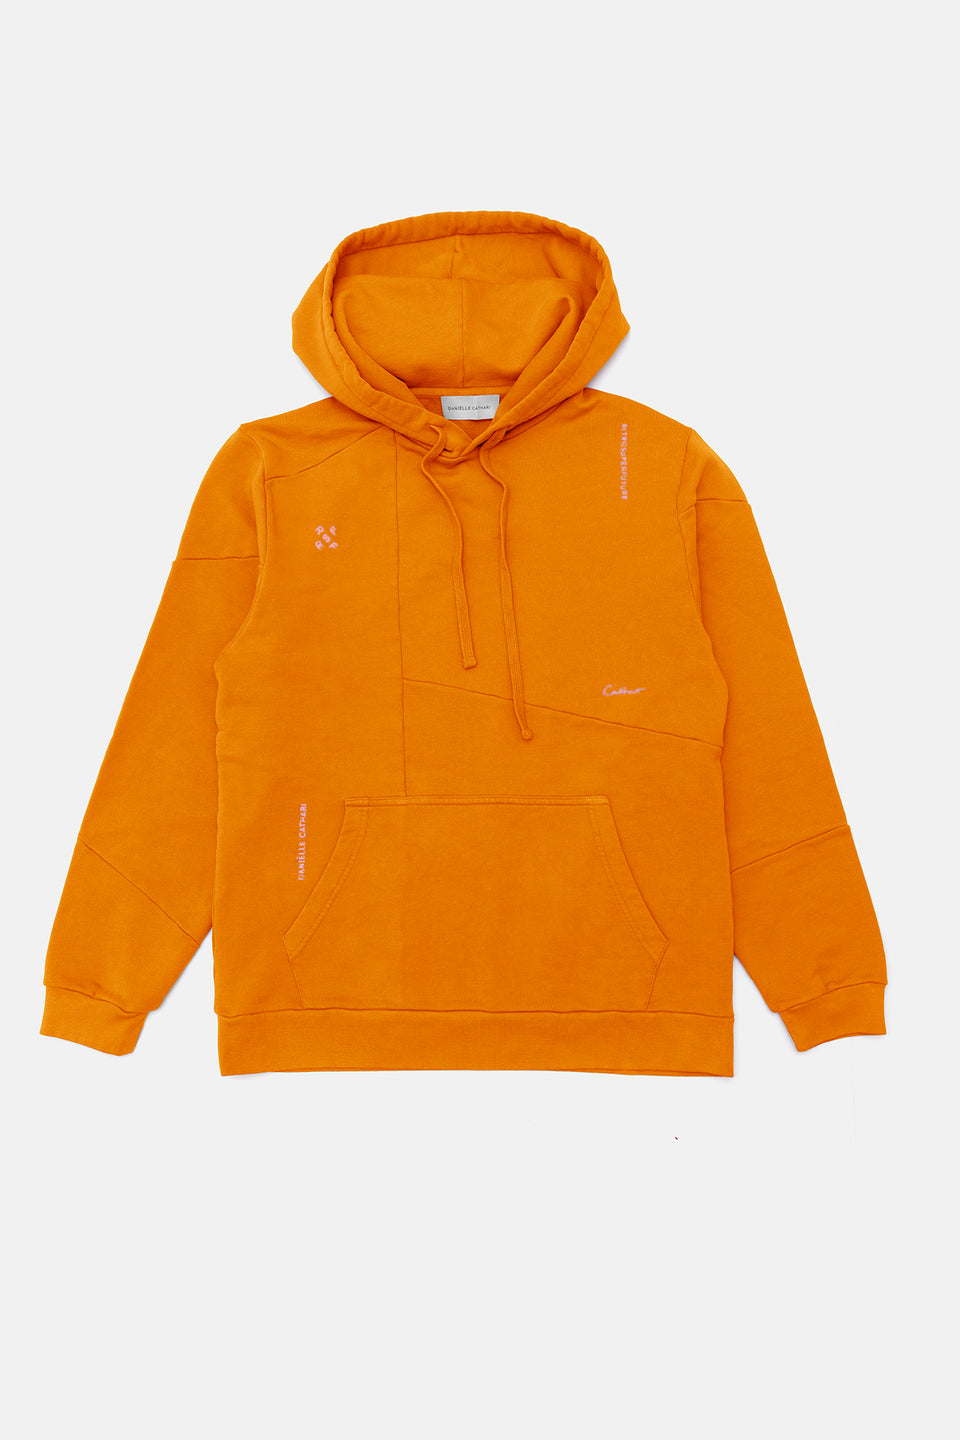 RSF x DC Deconstructed Hoodie Rusty Orange